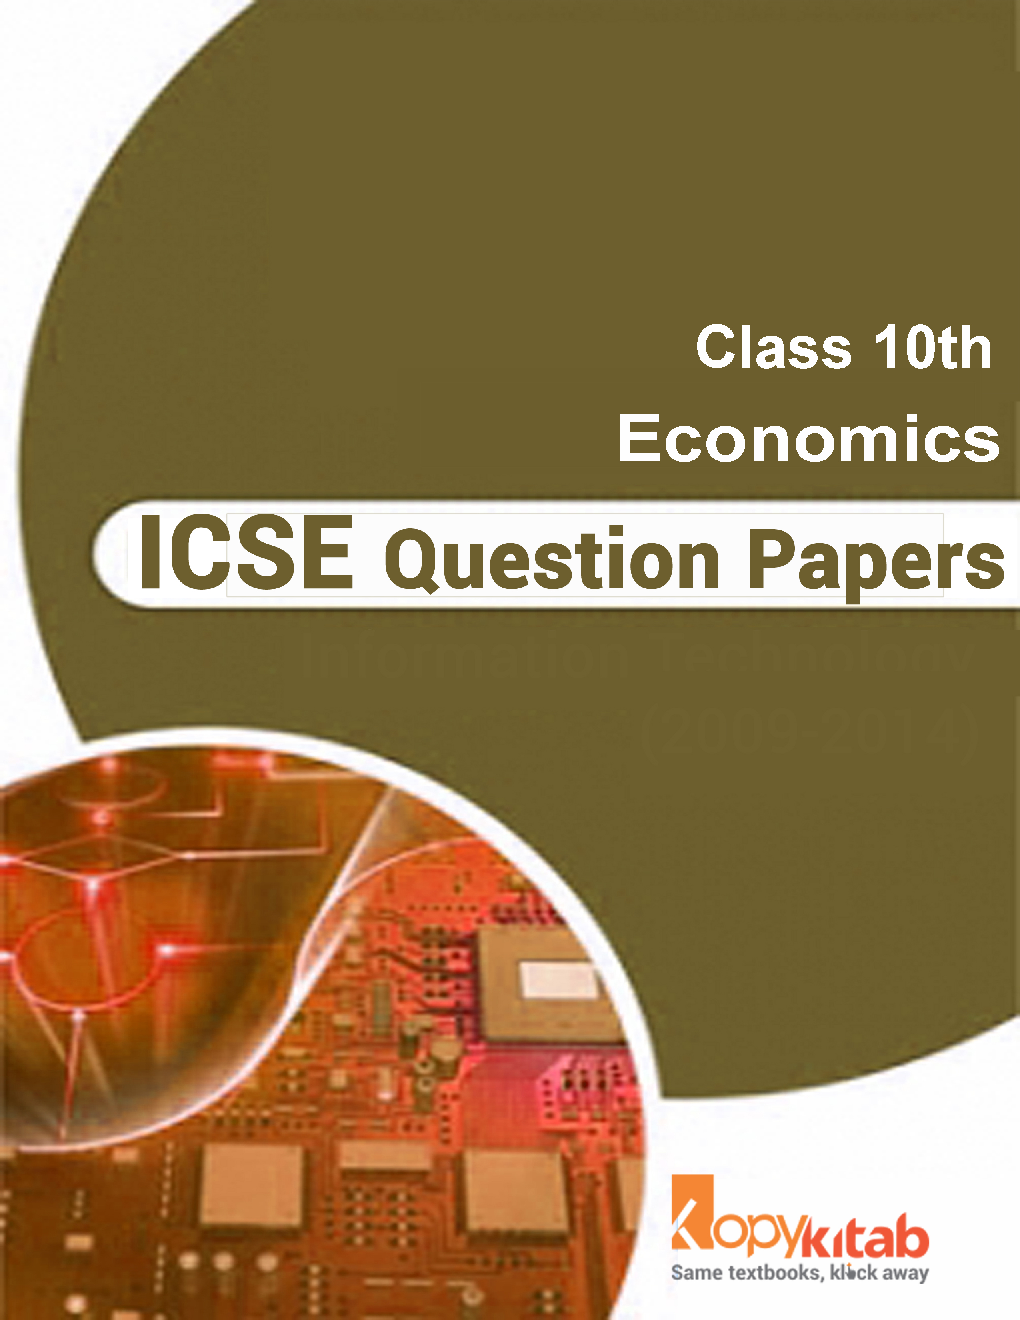 ICSE Sample Question Papers For Class 10 Economics - Page 1